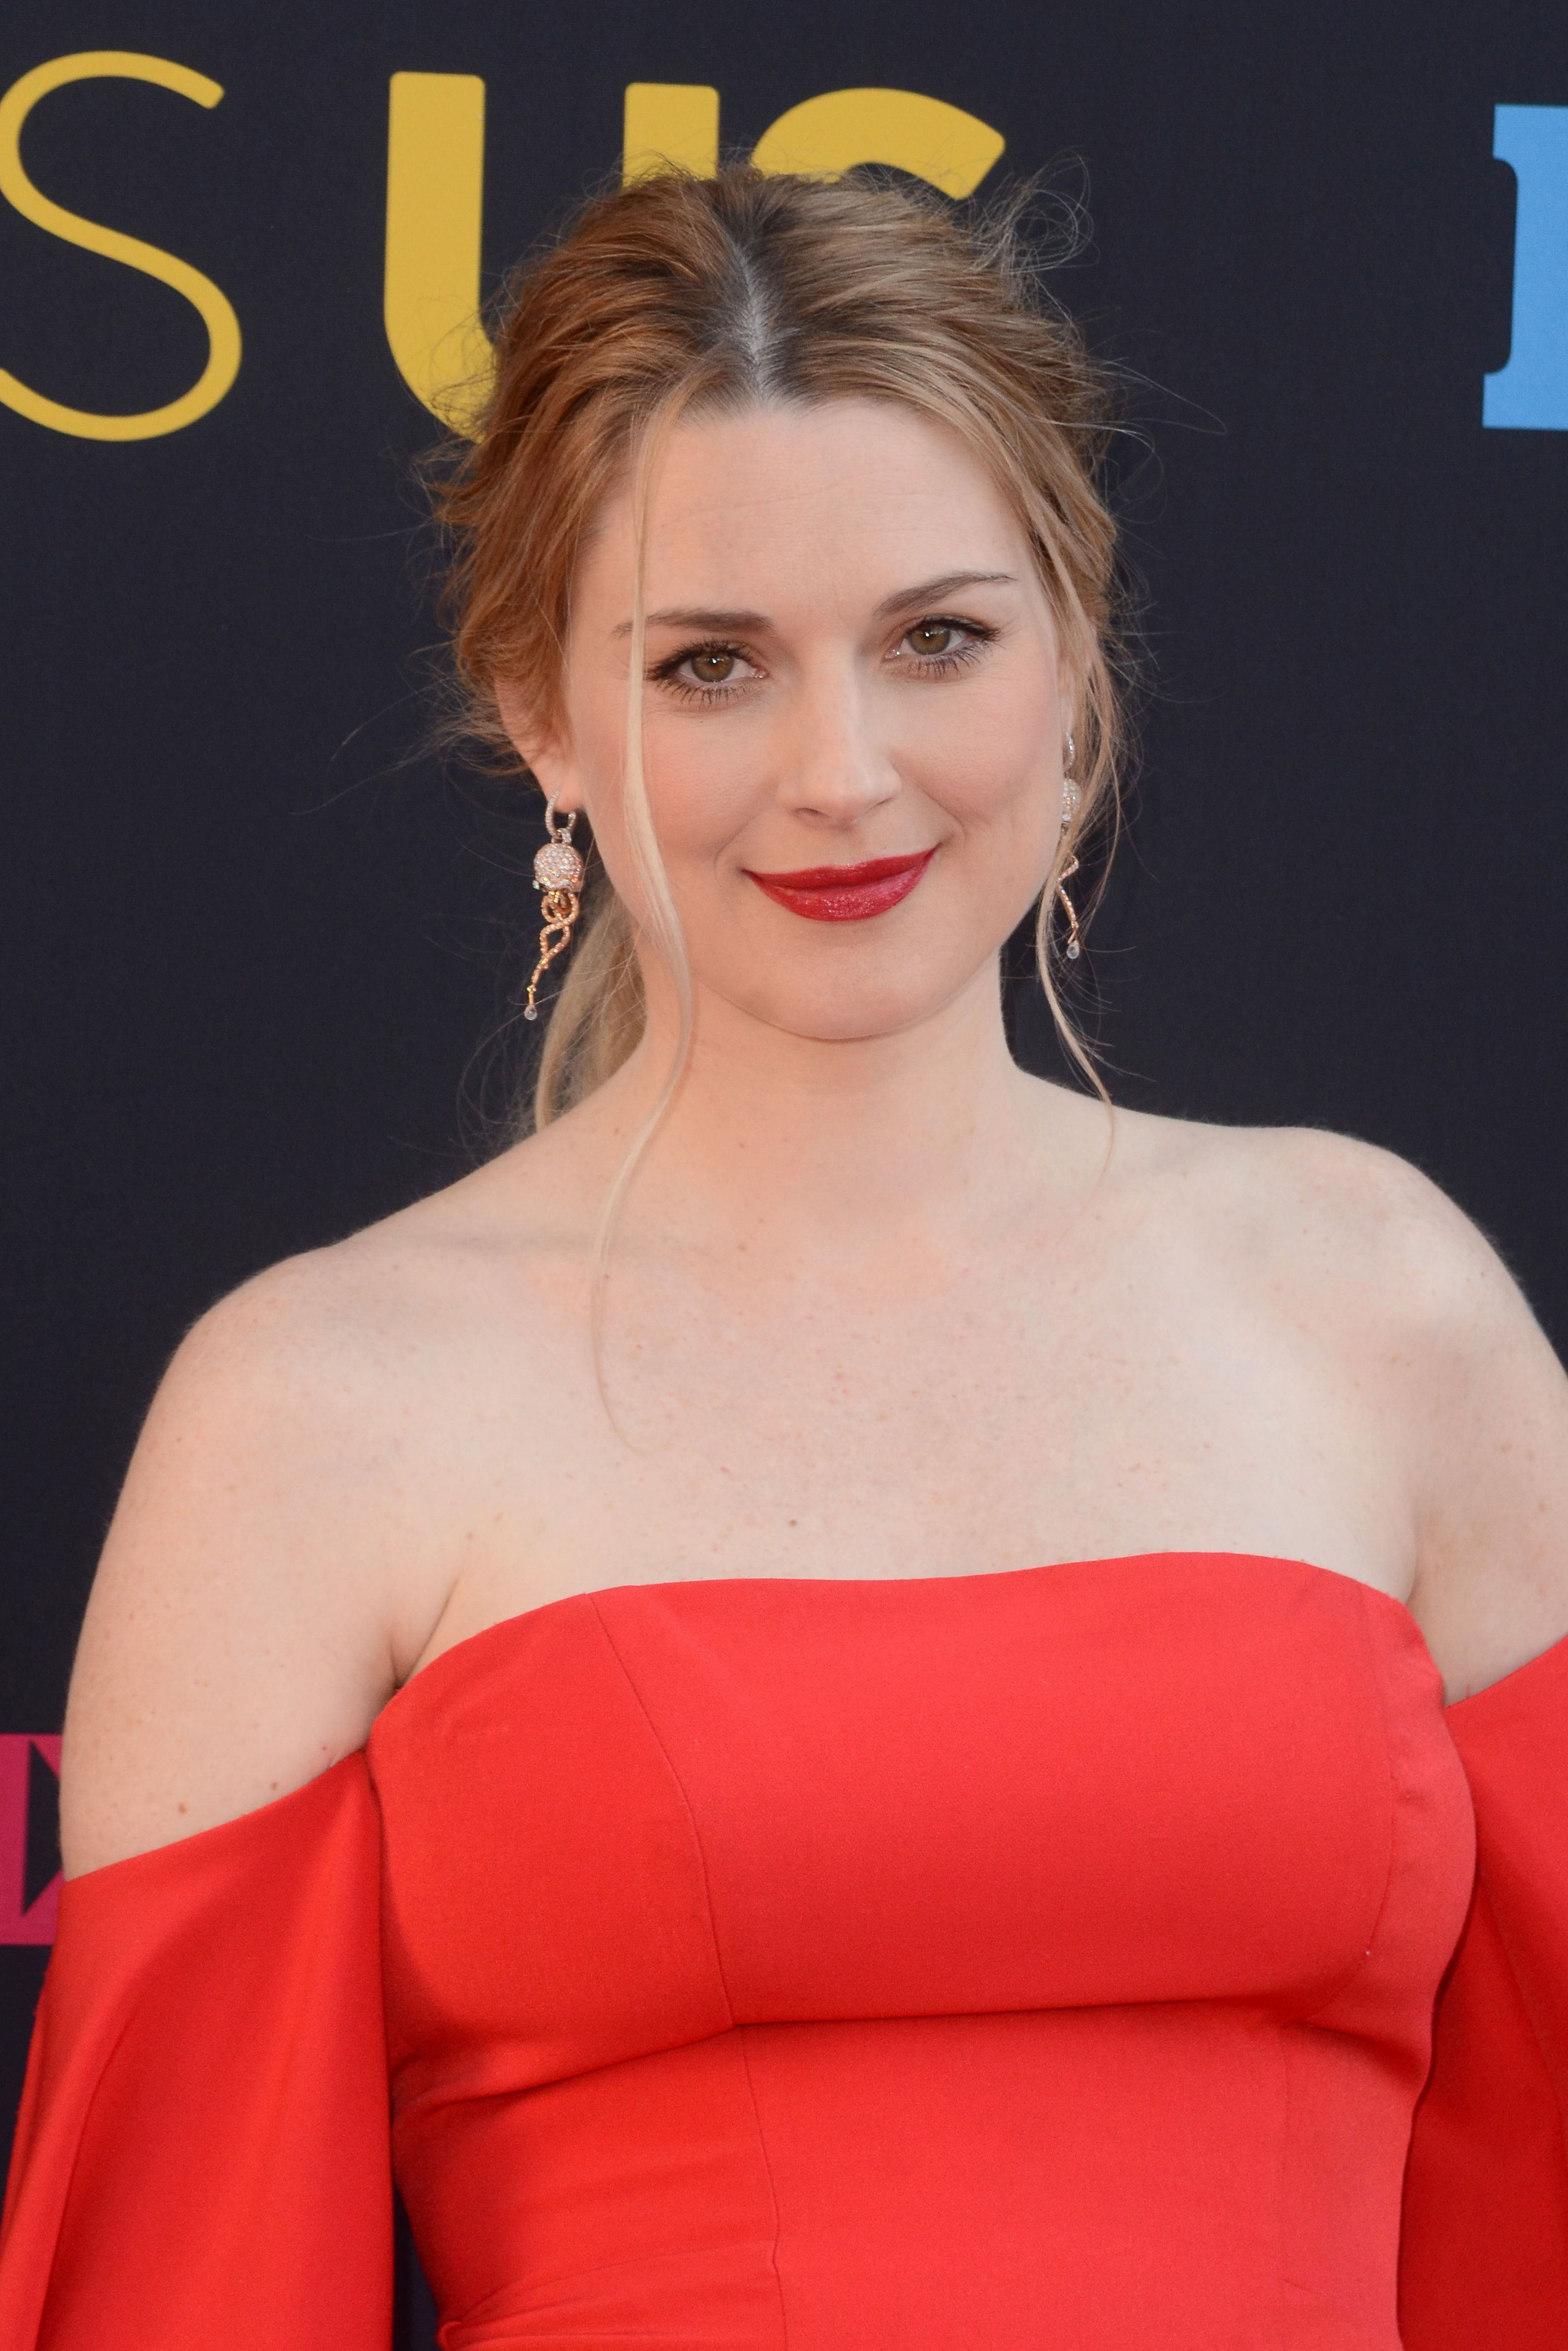 Alexandra Brackenridge wears an off-the-shoulder red dress with her hair up.